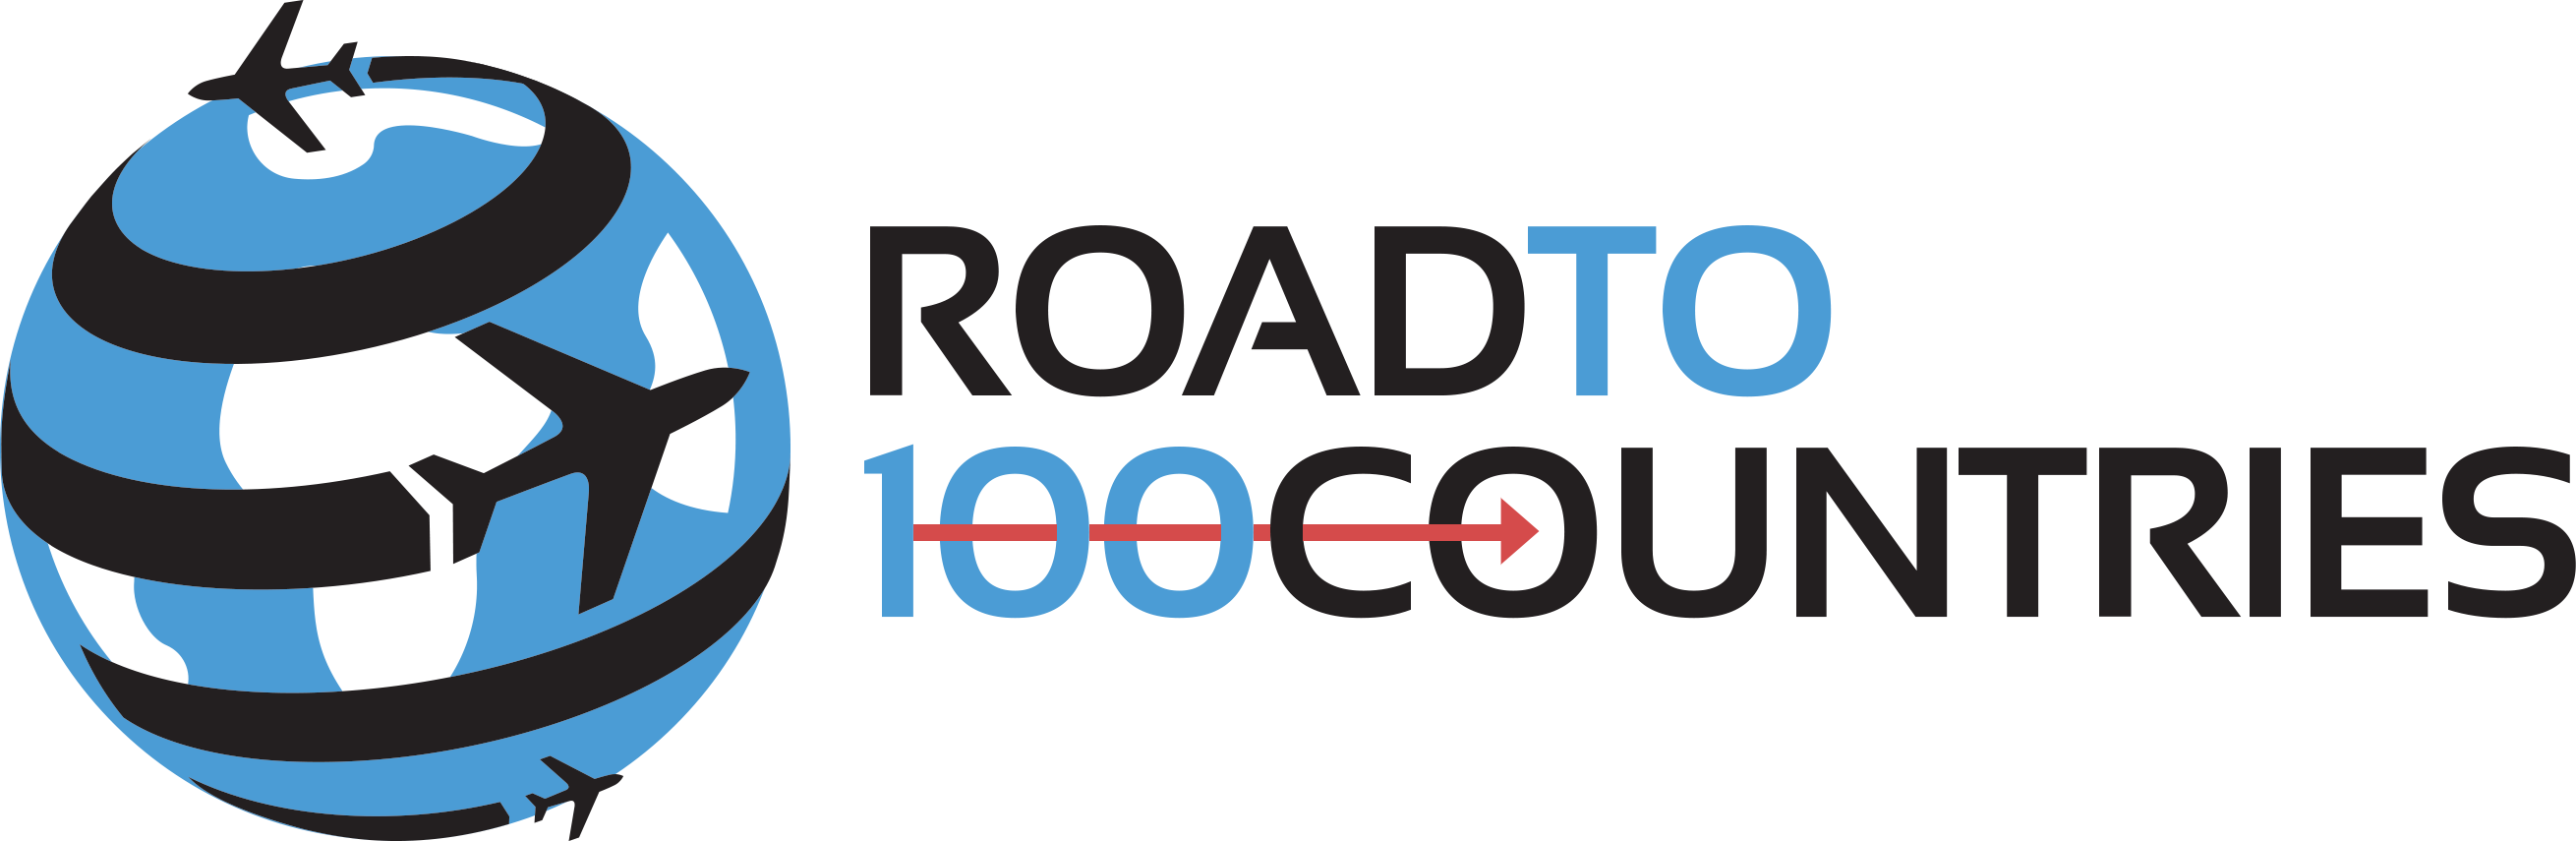 Road to 100 Countries